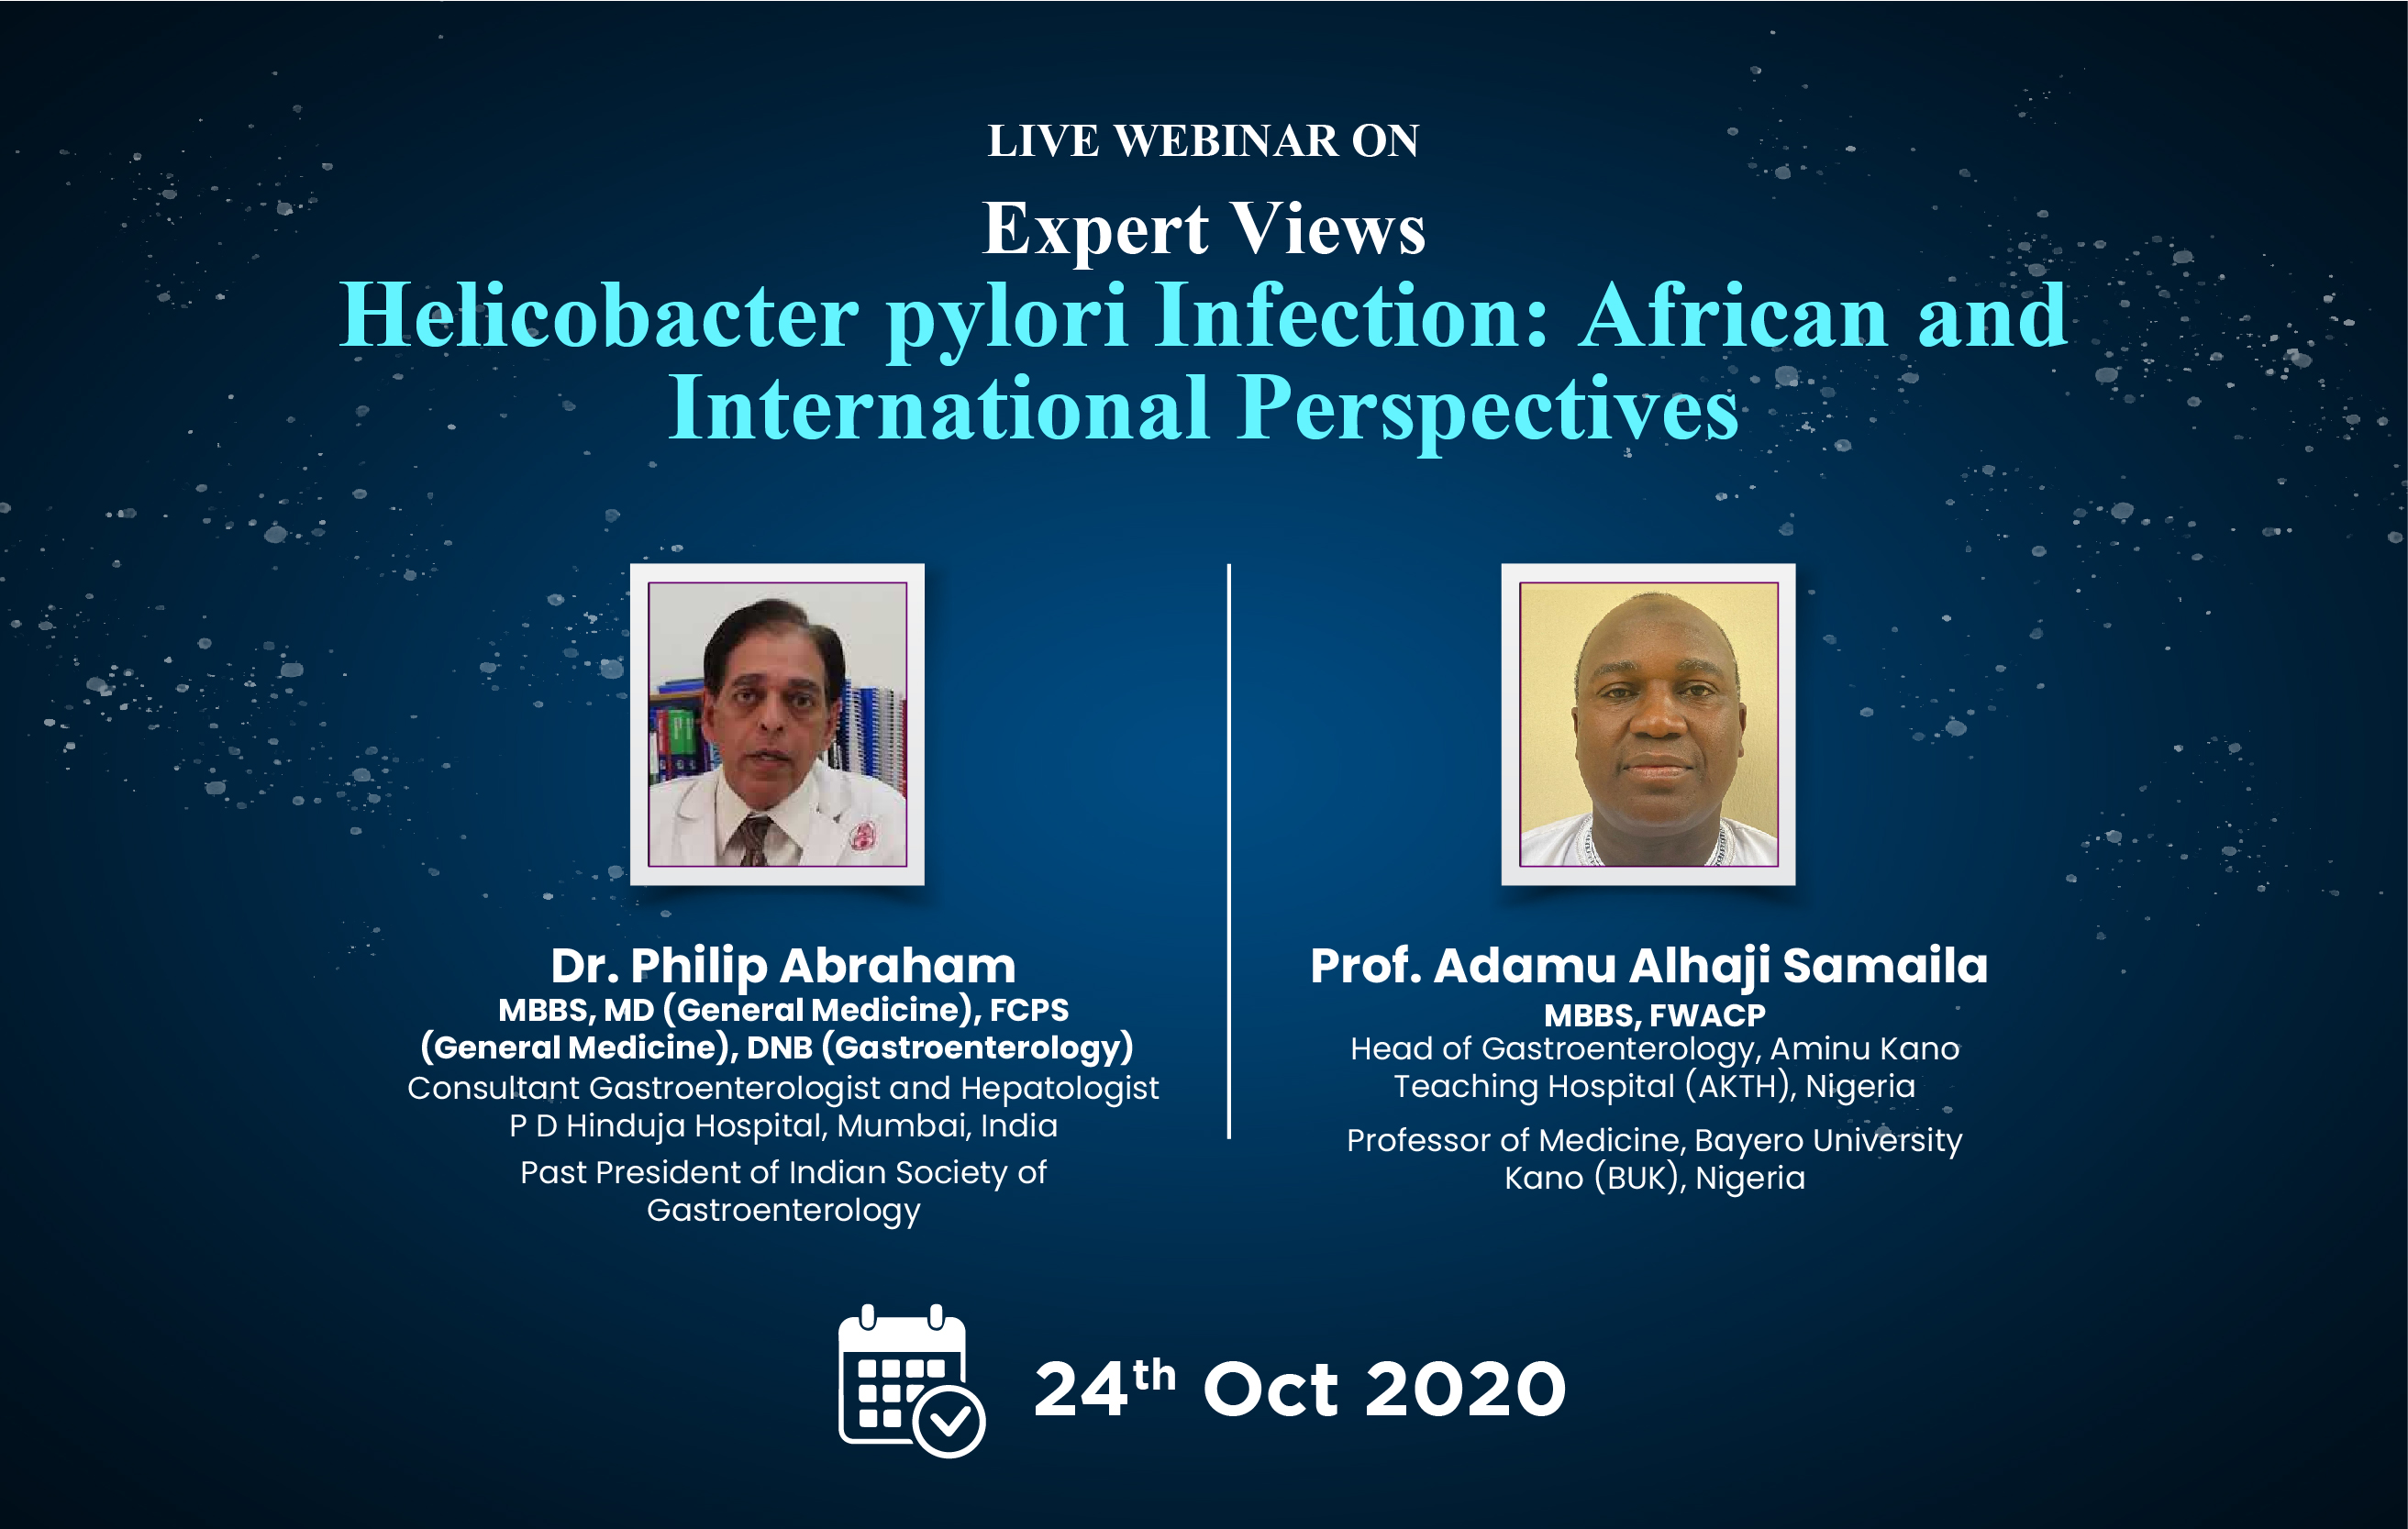 Helicobacter pylori Infection: African and International Perspectives